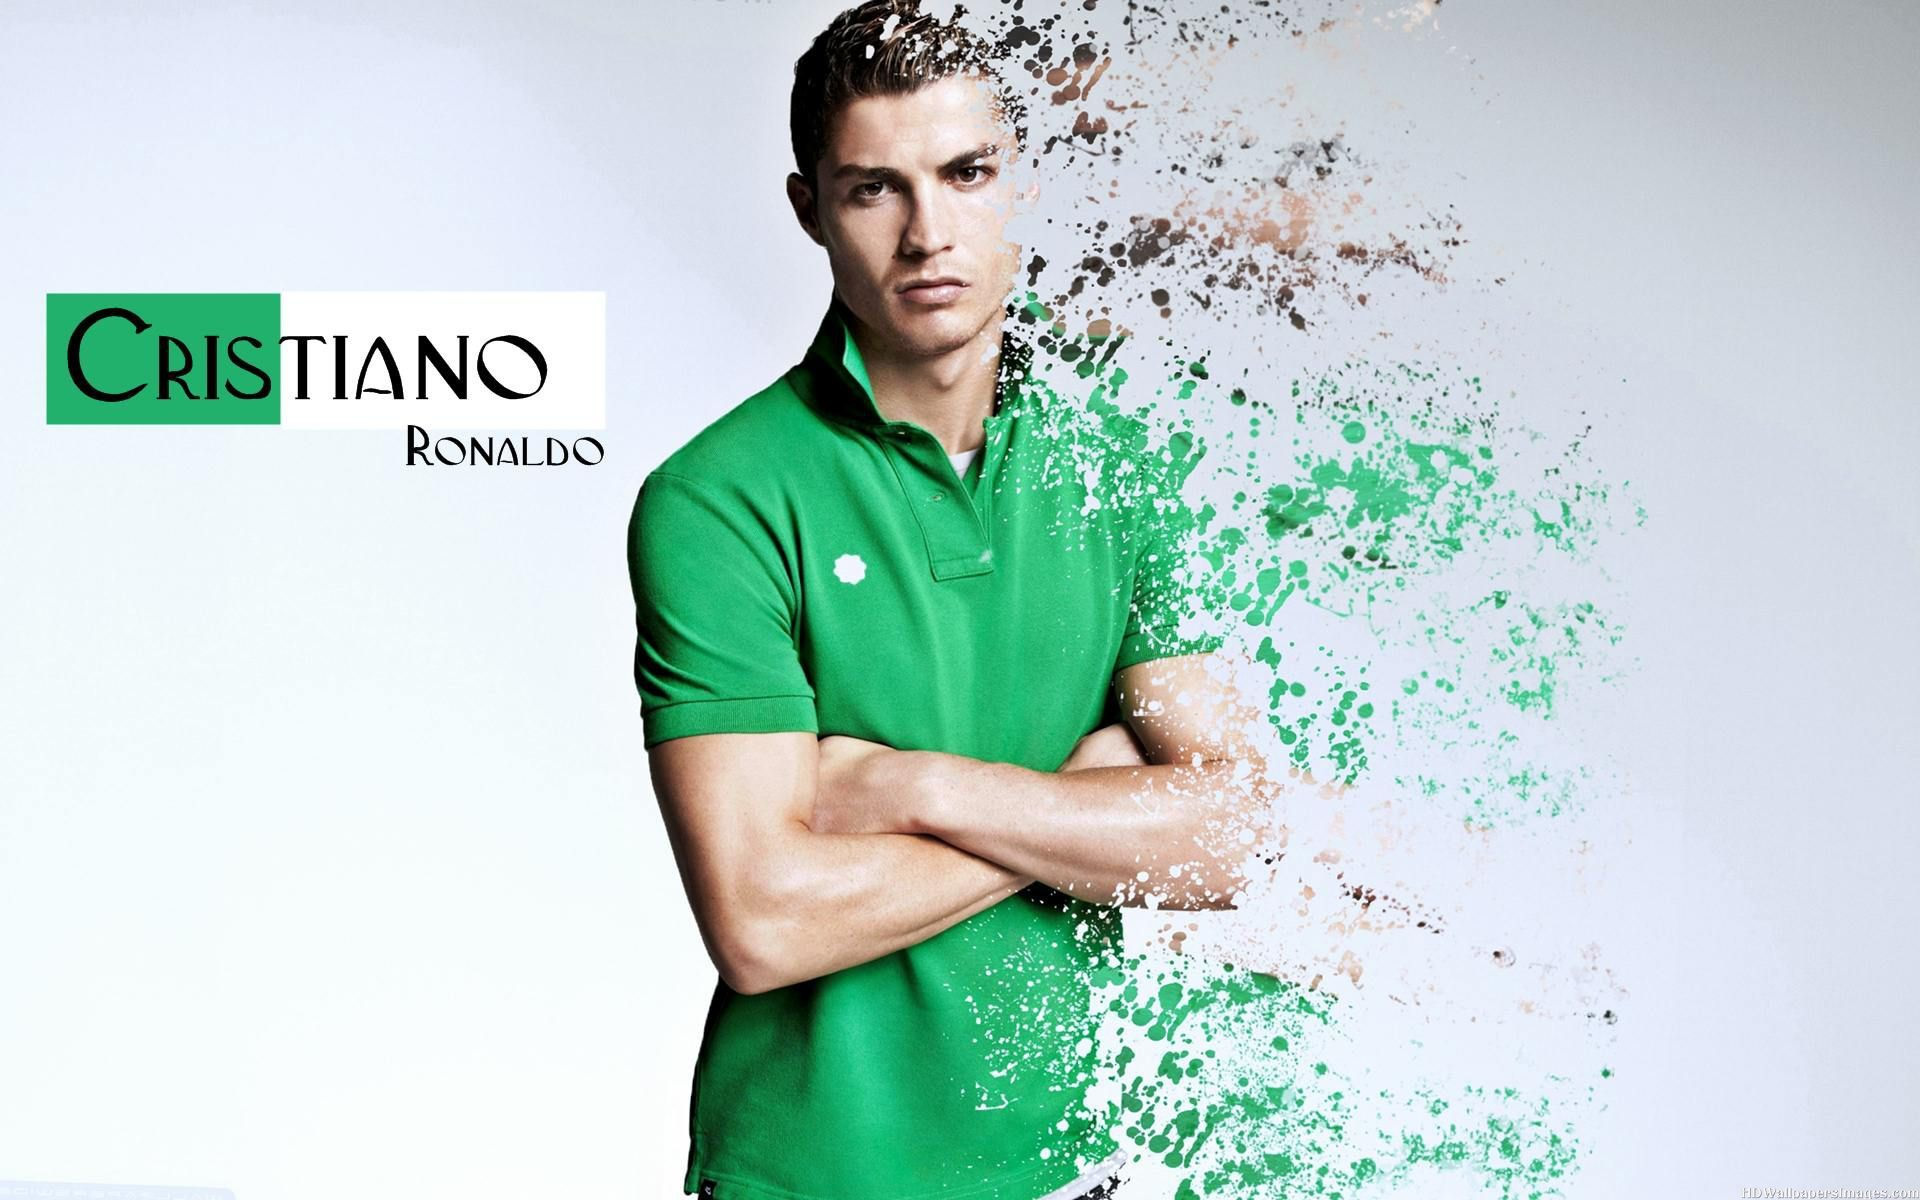 Cristiano Ronaldo Wallpapers Images Photos Pictures Backgrounds 1920x1200